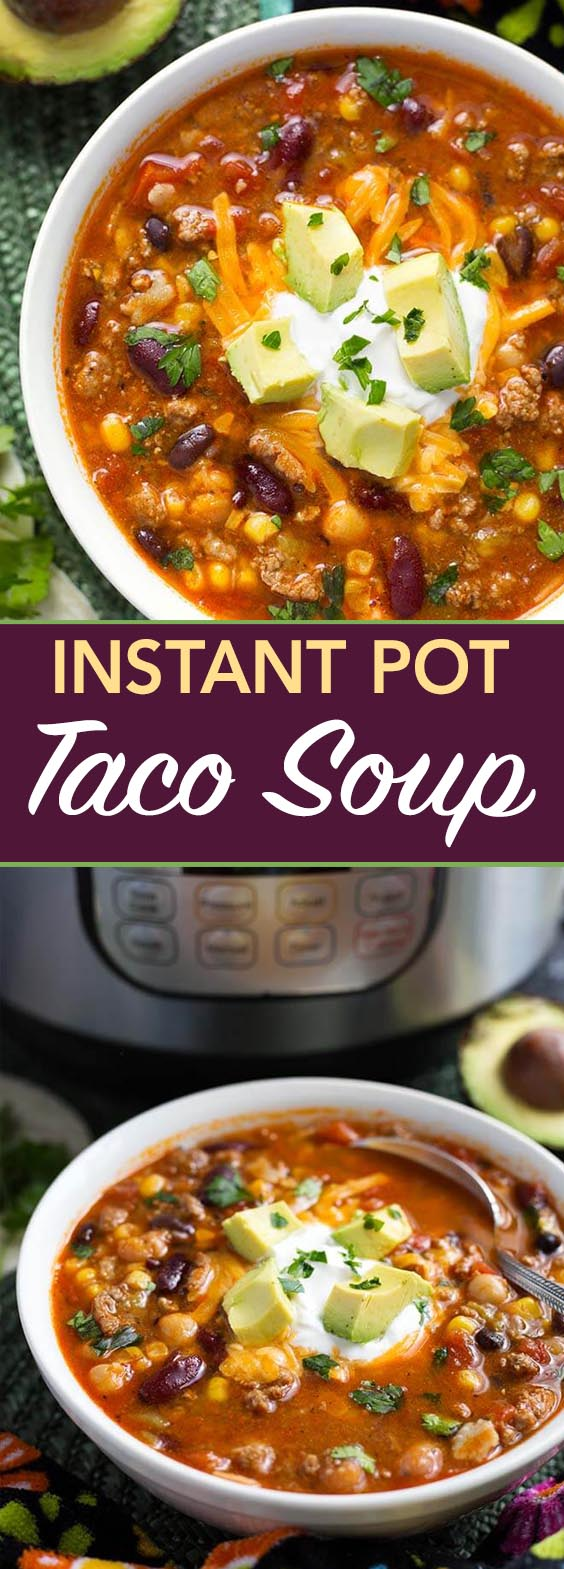 Ground Turkey Instant Pot Meals - Instant Pot Taco Soup is a delicious and hearty soup made ...